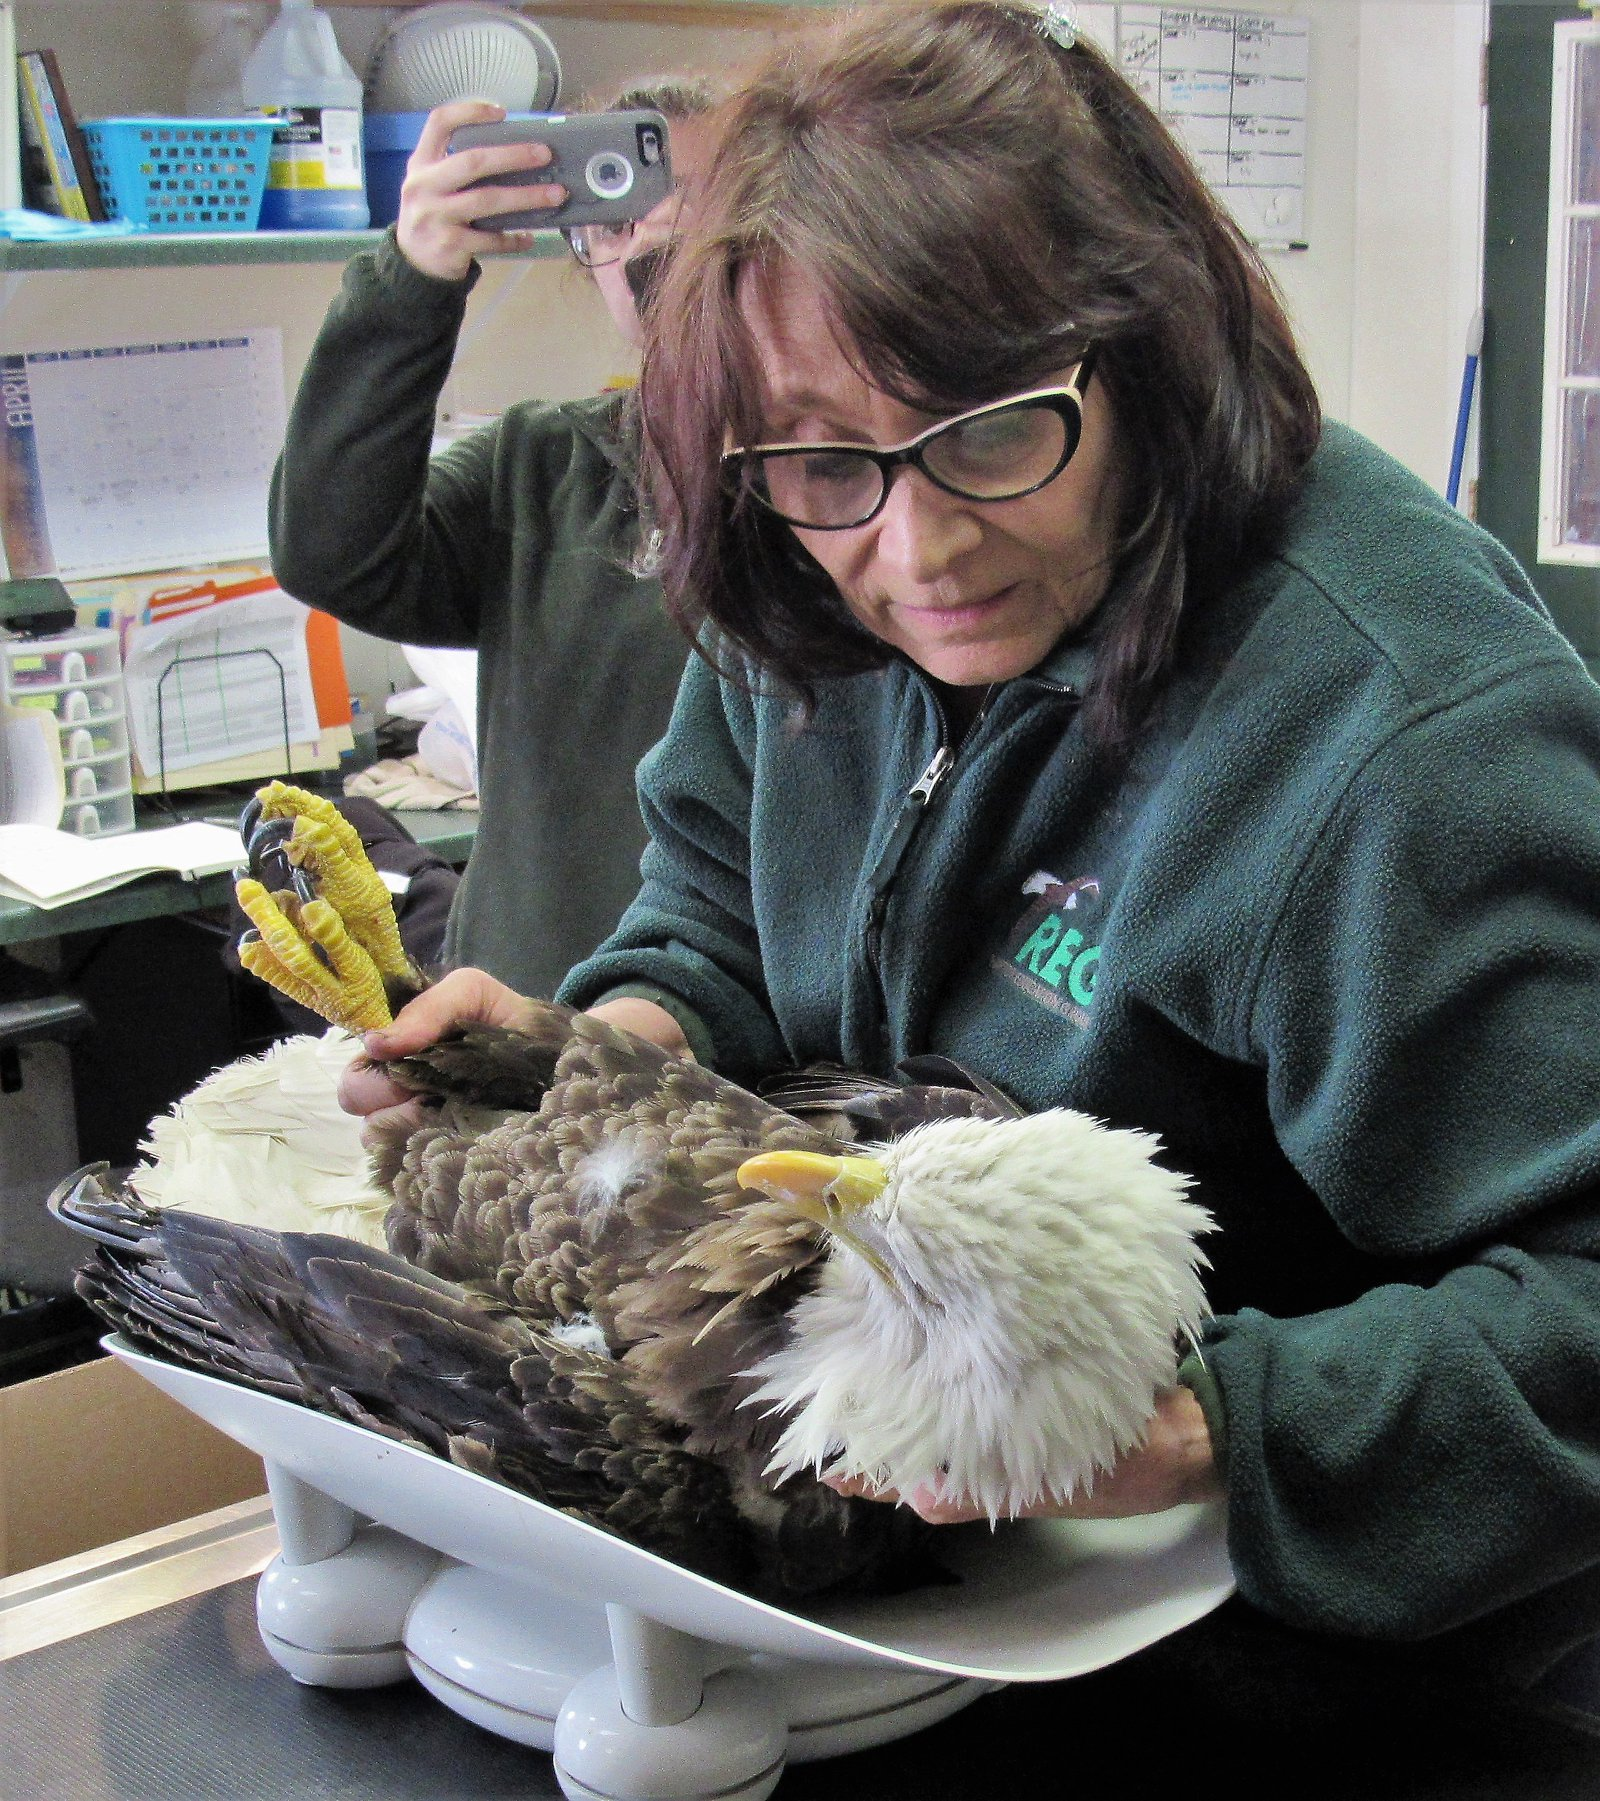 The Bald eagle is very low in weight due to a combination of lead poisoning and a wing fracture.